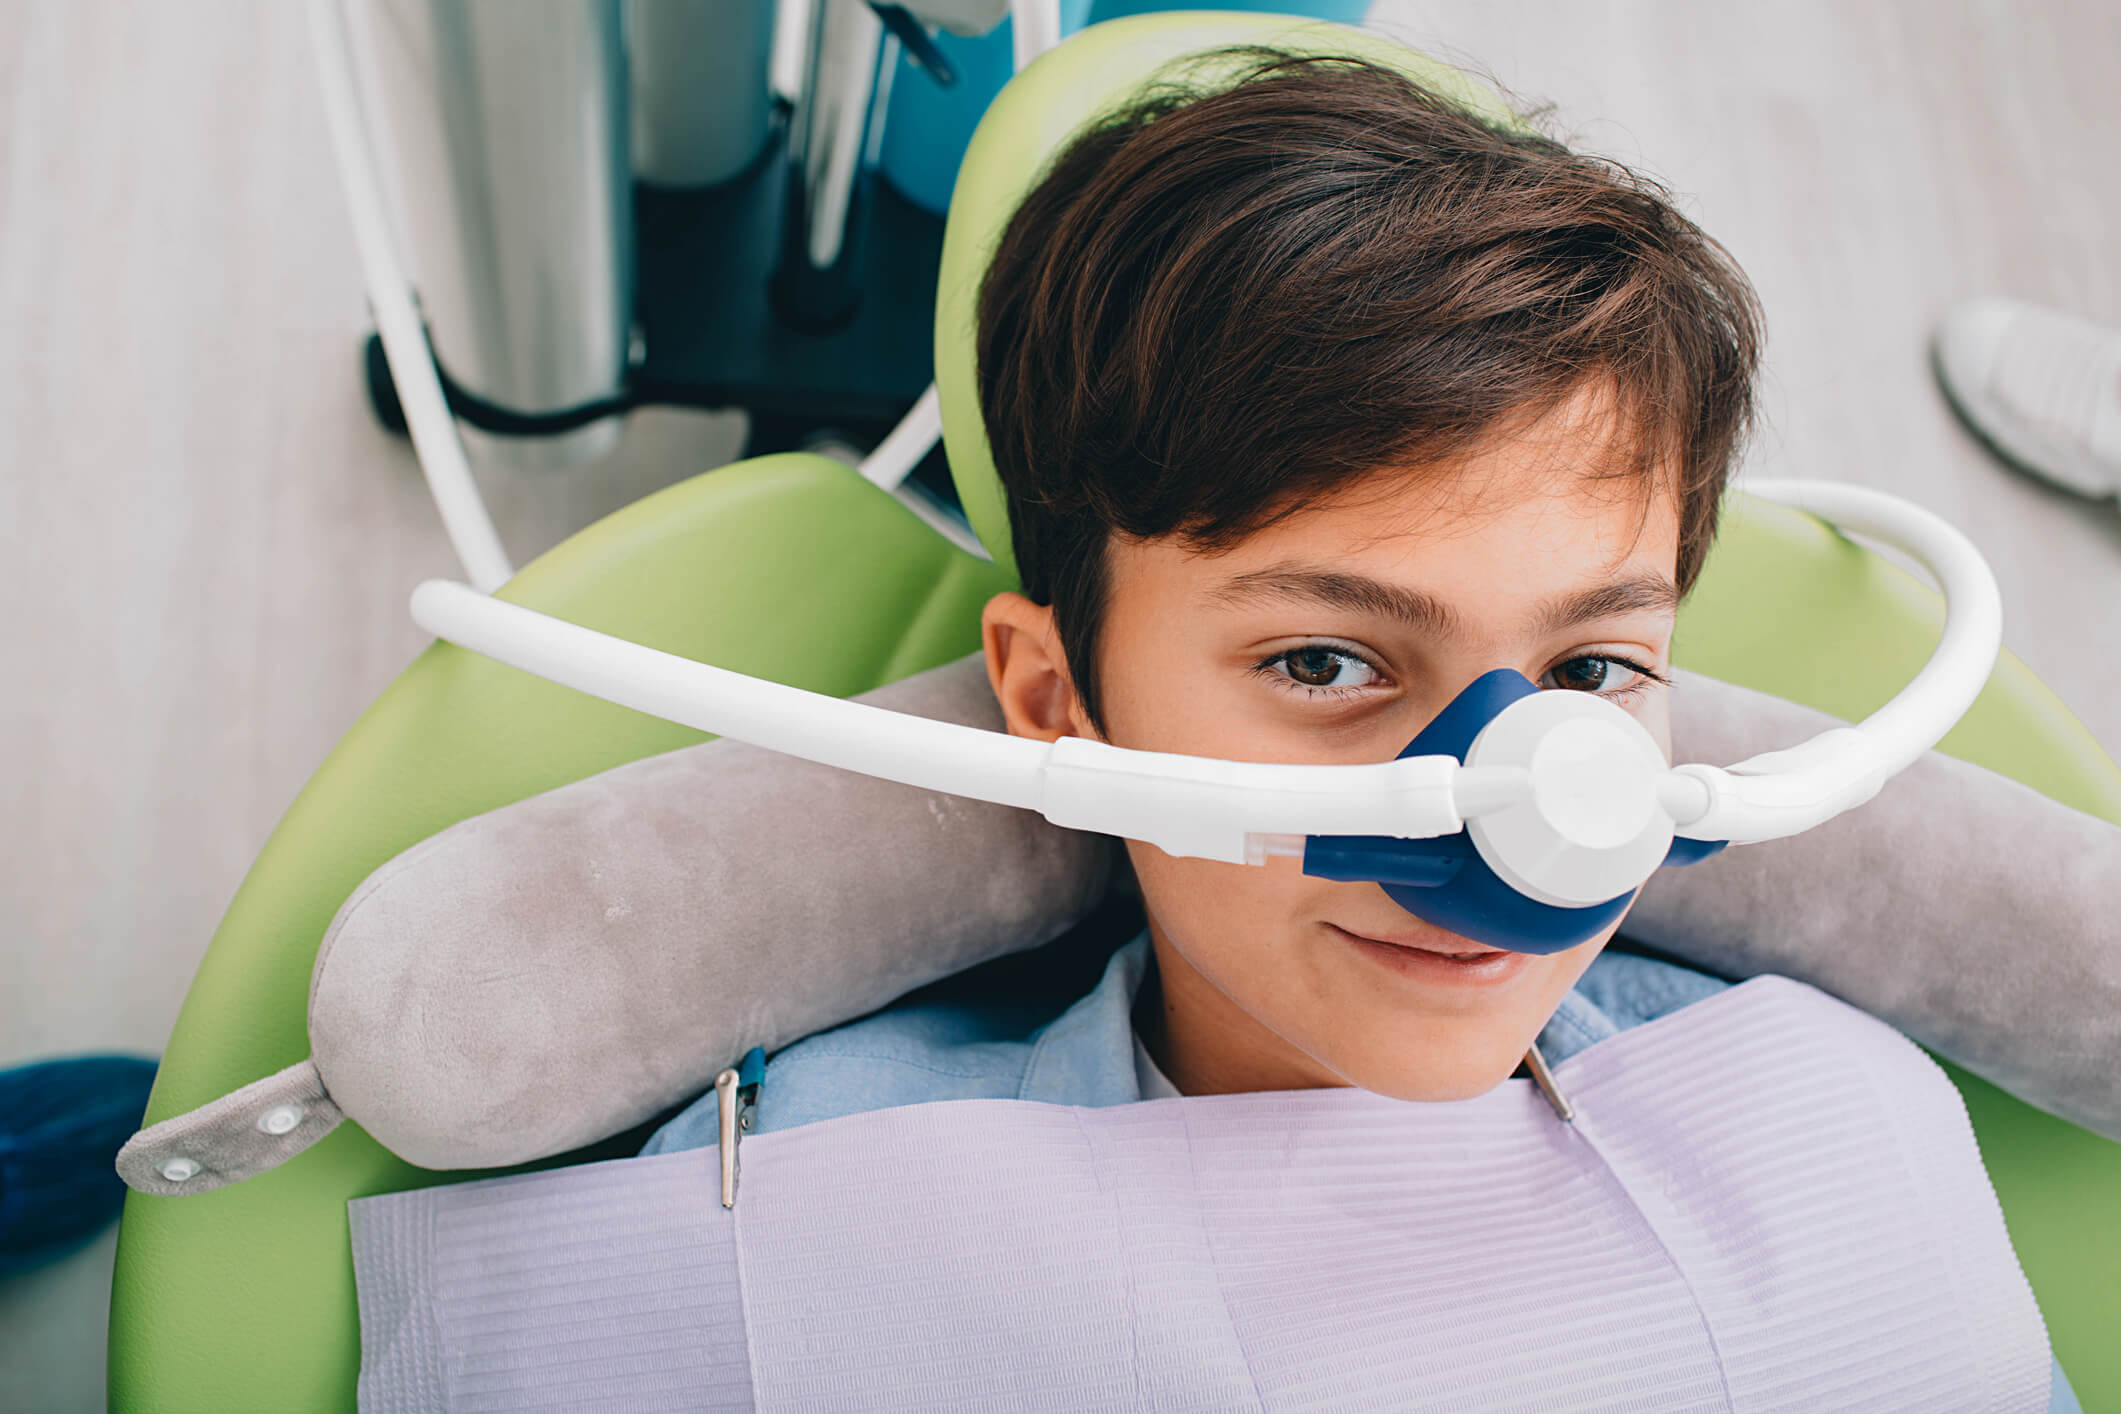 What-To-Expect-Sedation-Dentistry-Blog_Three-Rivers-Dental